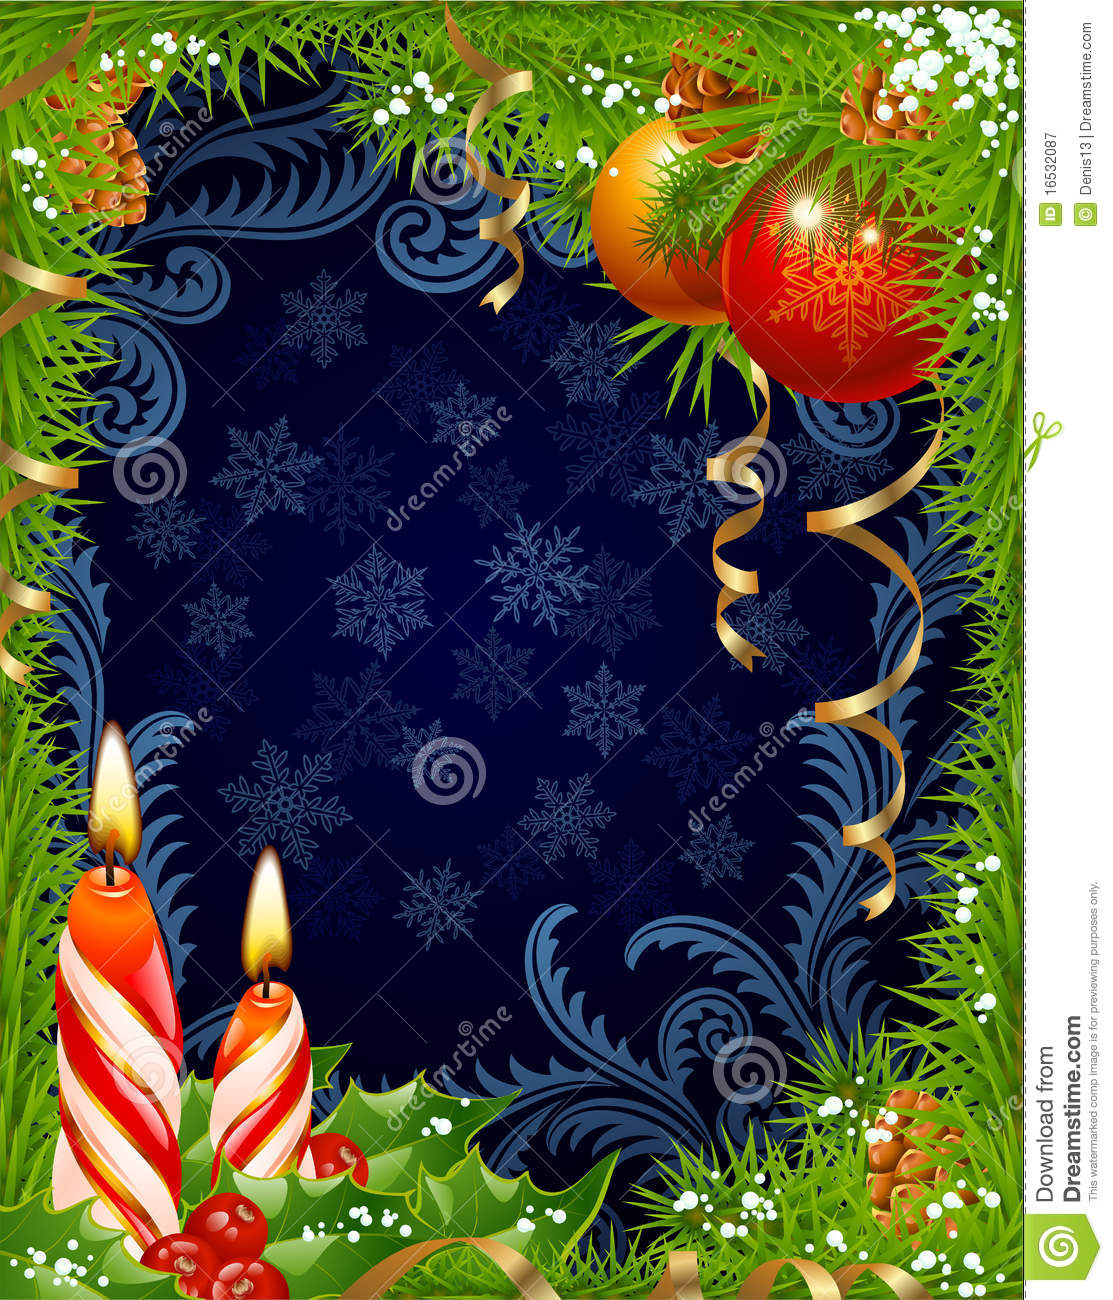 Christmas and new year greeting card 3 stock vector illustration christmas and new year greeting card 3 m4hsunfo